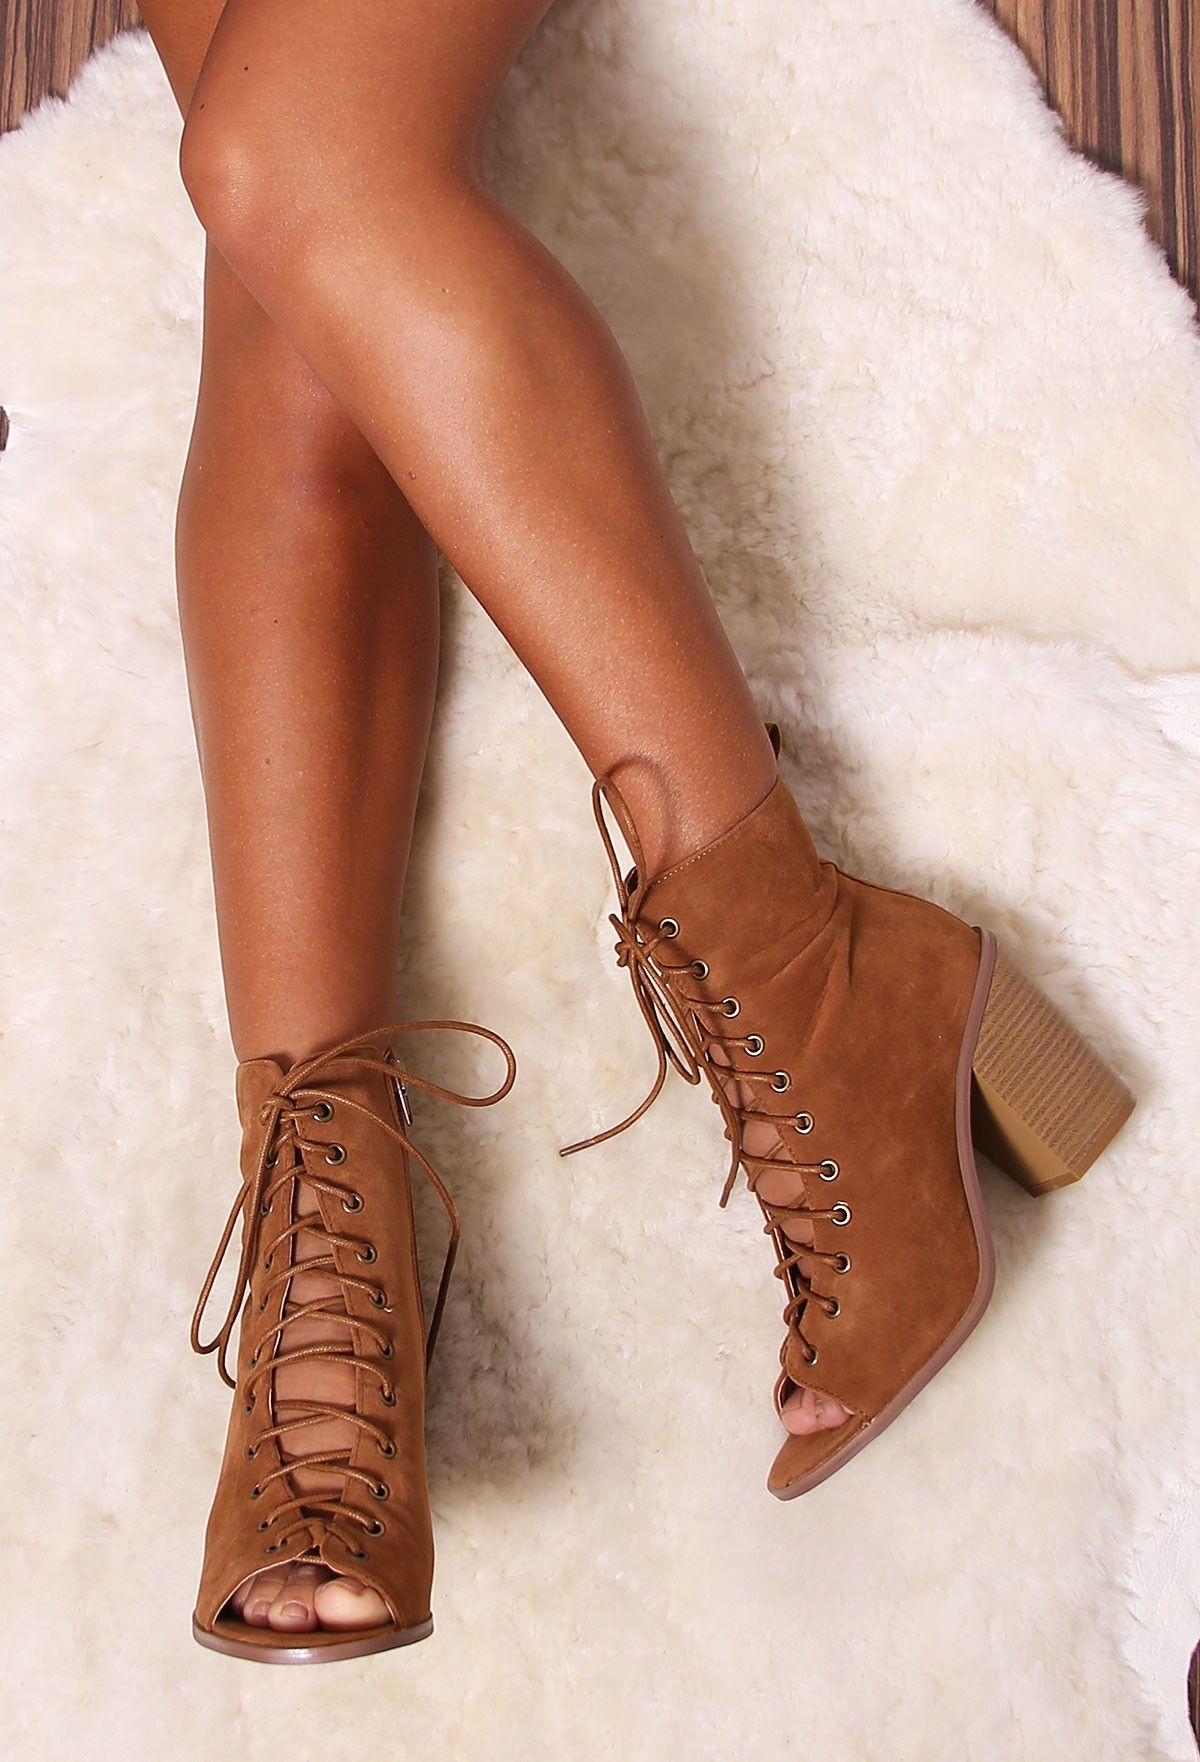 Donni Tan Lace Up Peep Toe Boots | Lace, Peeps and Tans